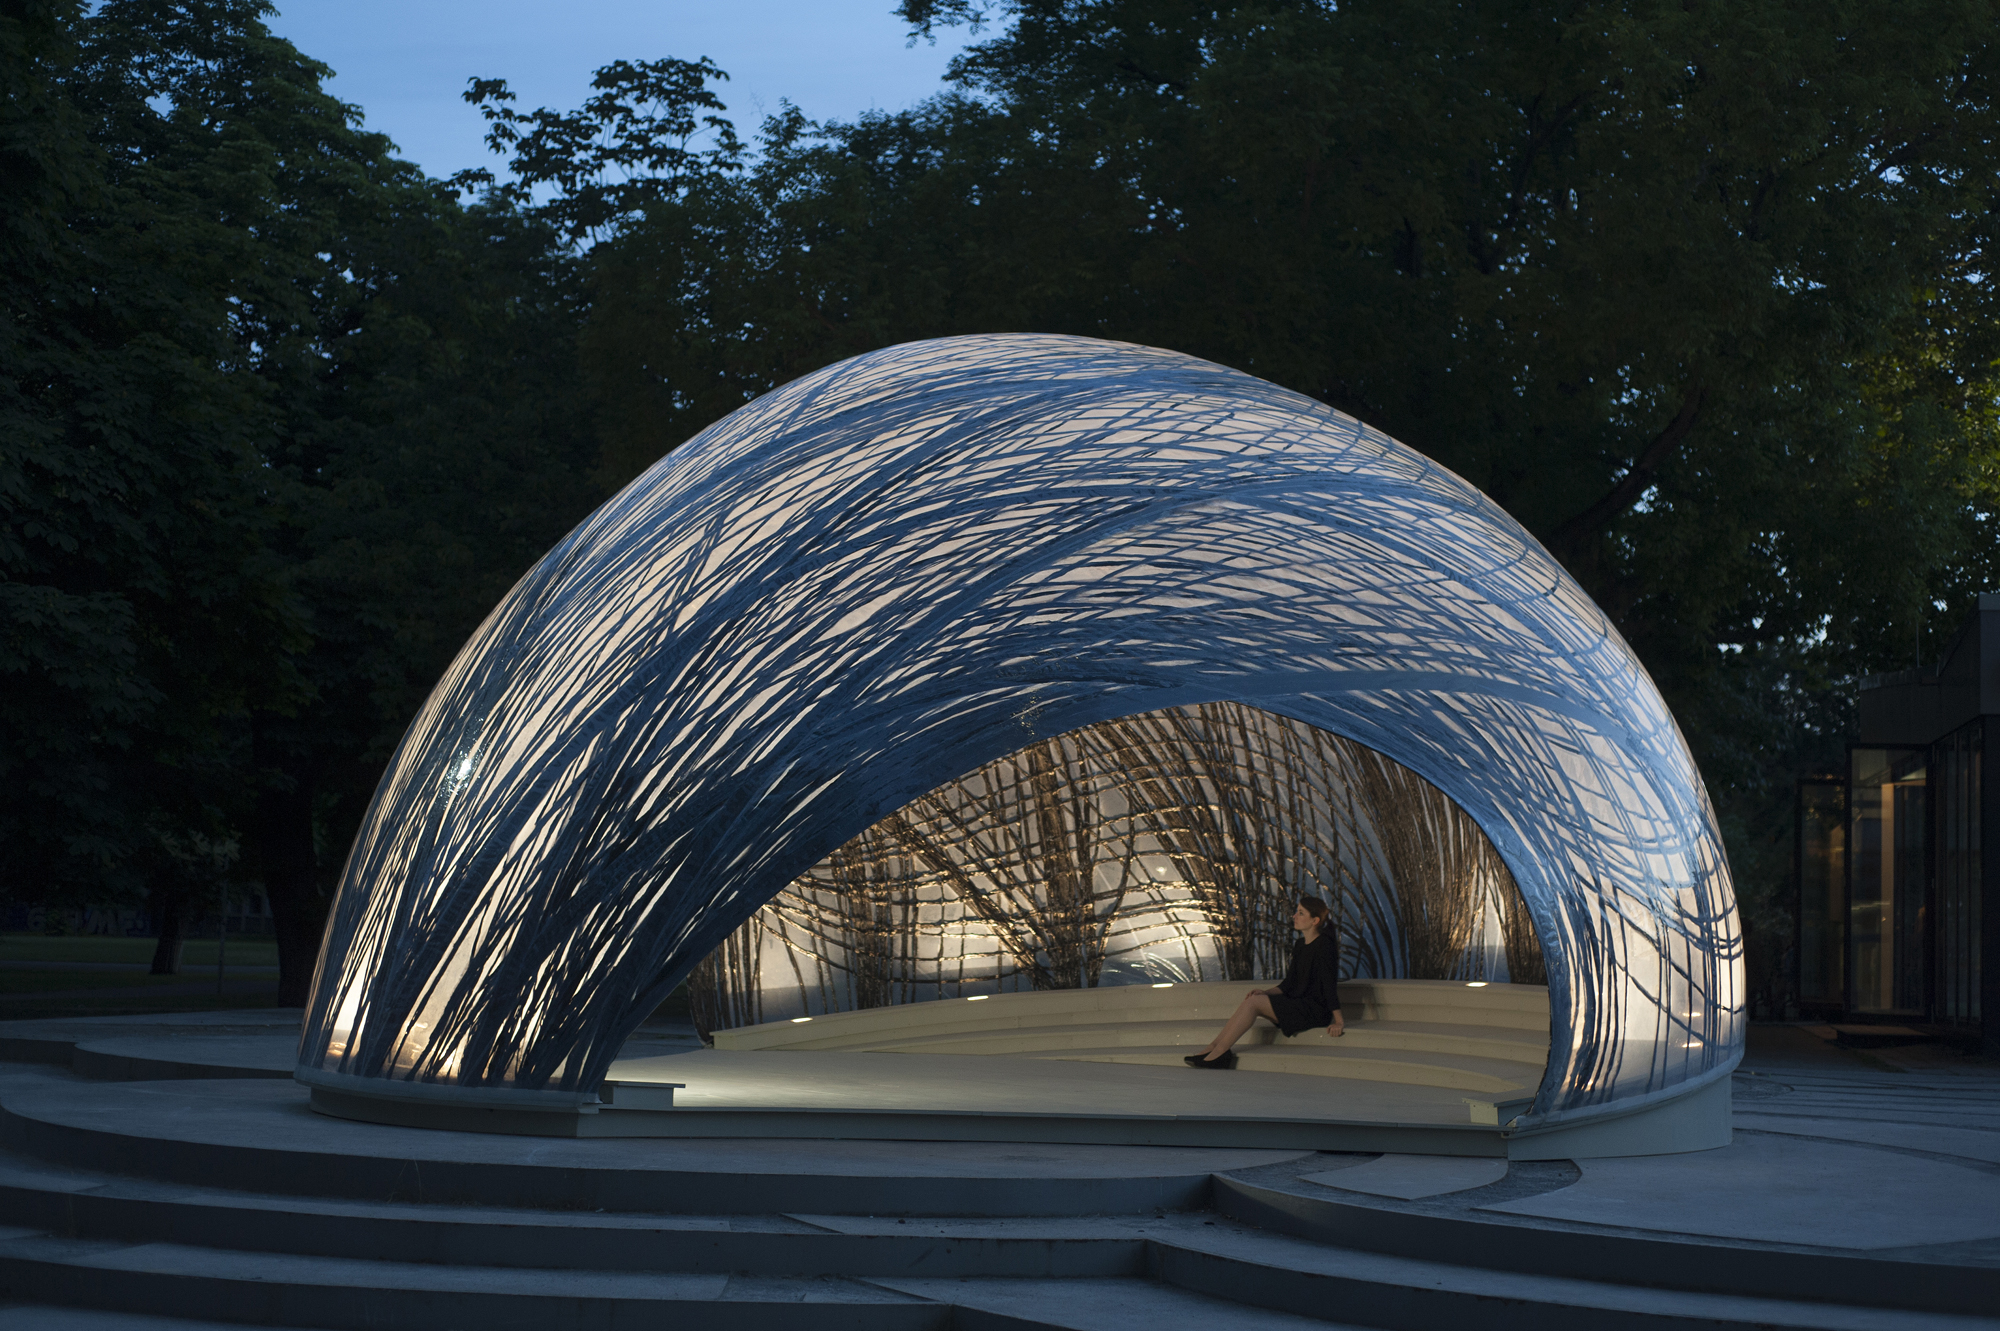 Architektur Stuttgart Icd/itke 2014-2015 Research Pavilion | Architect Magazine